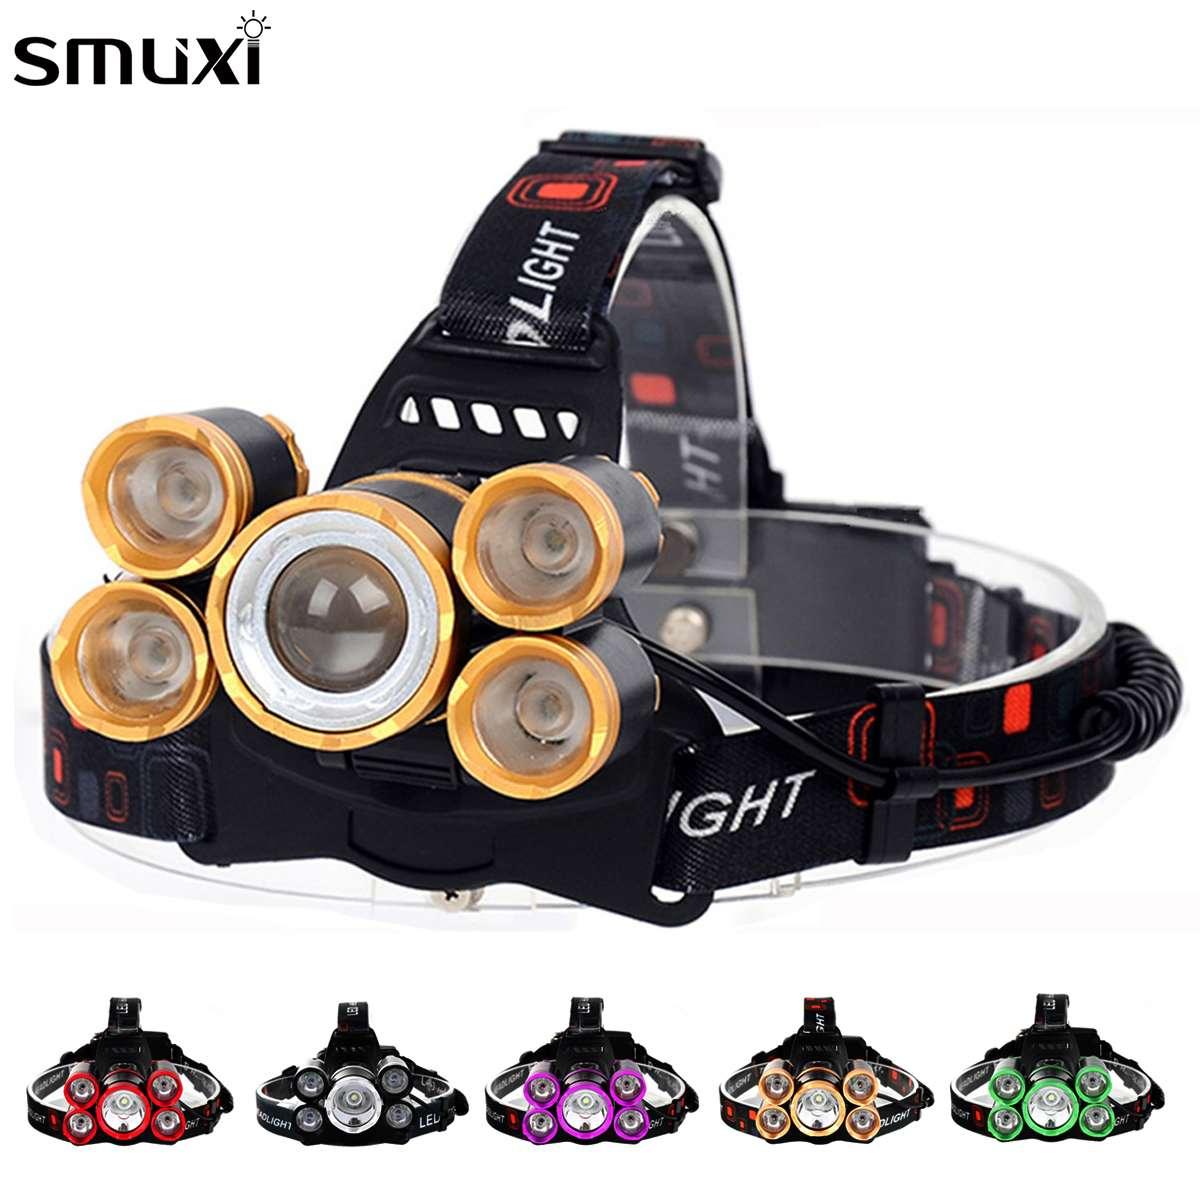 Smuxi 80000 Lm 5x T6 Rainproof LED Headlamp USB Headlight Head Torch 4 Mode For Outdoor Camping Emergency Head Light